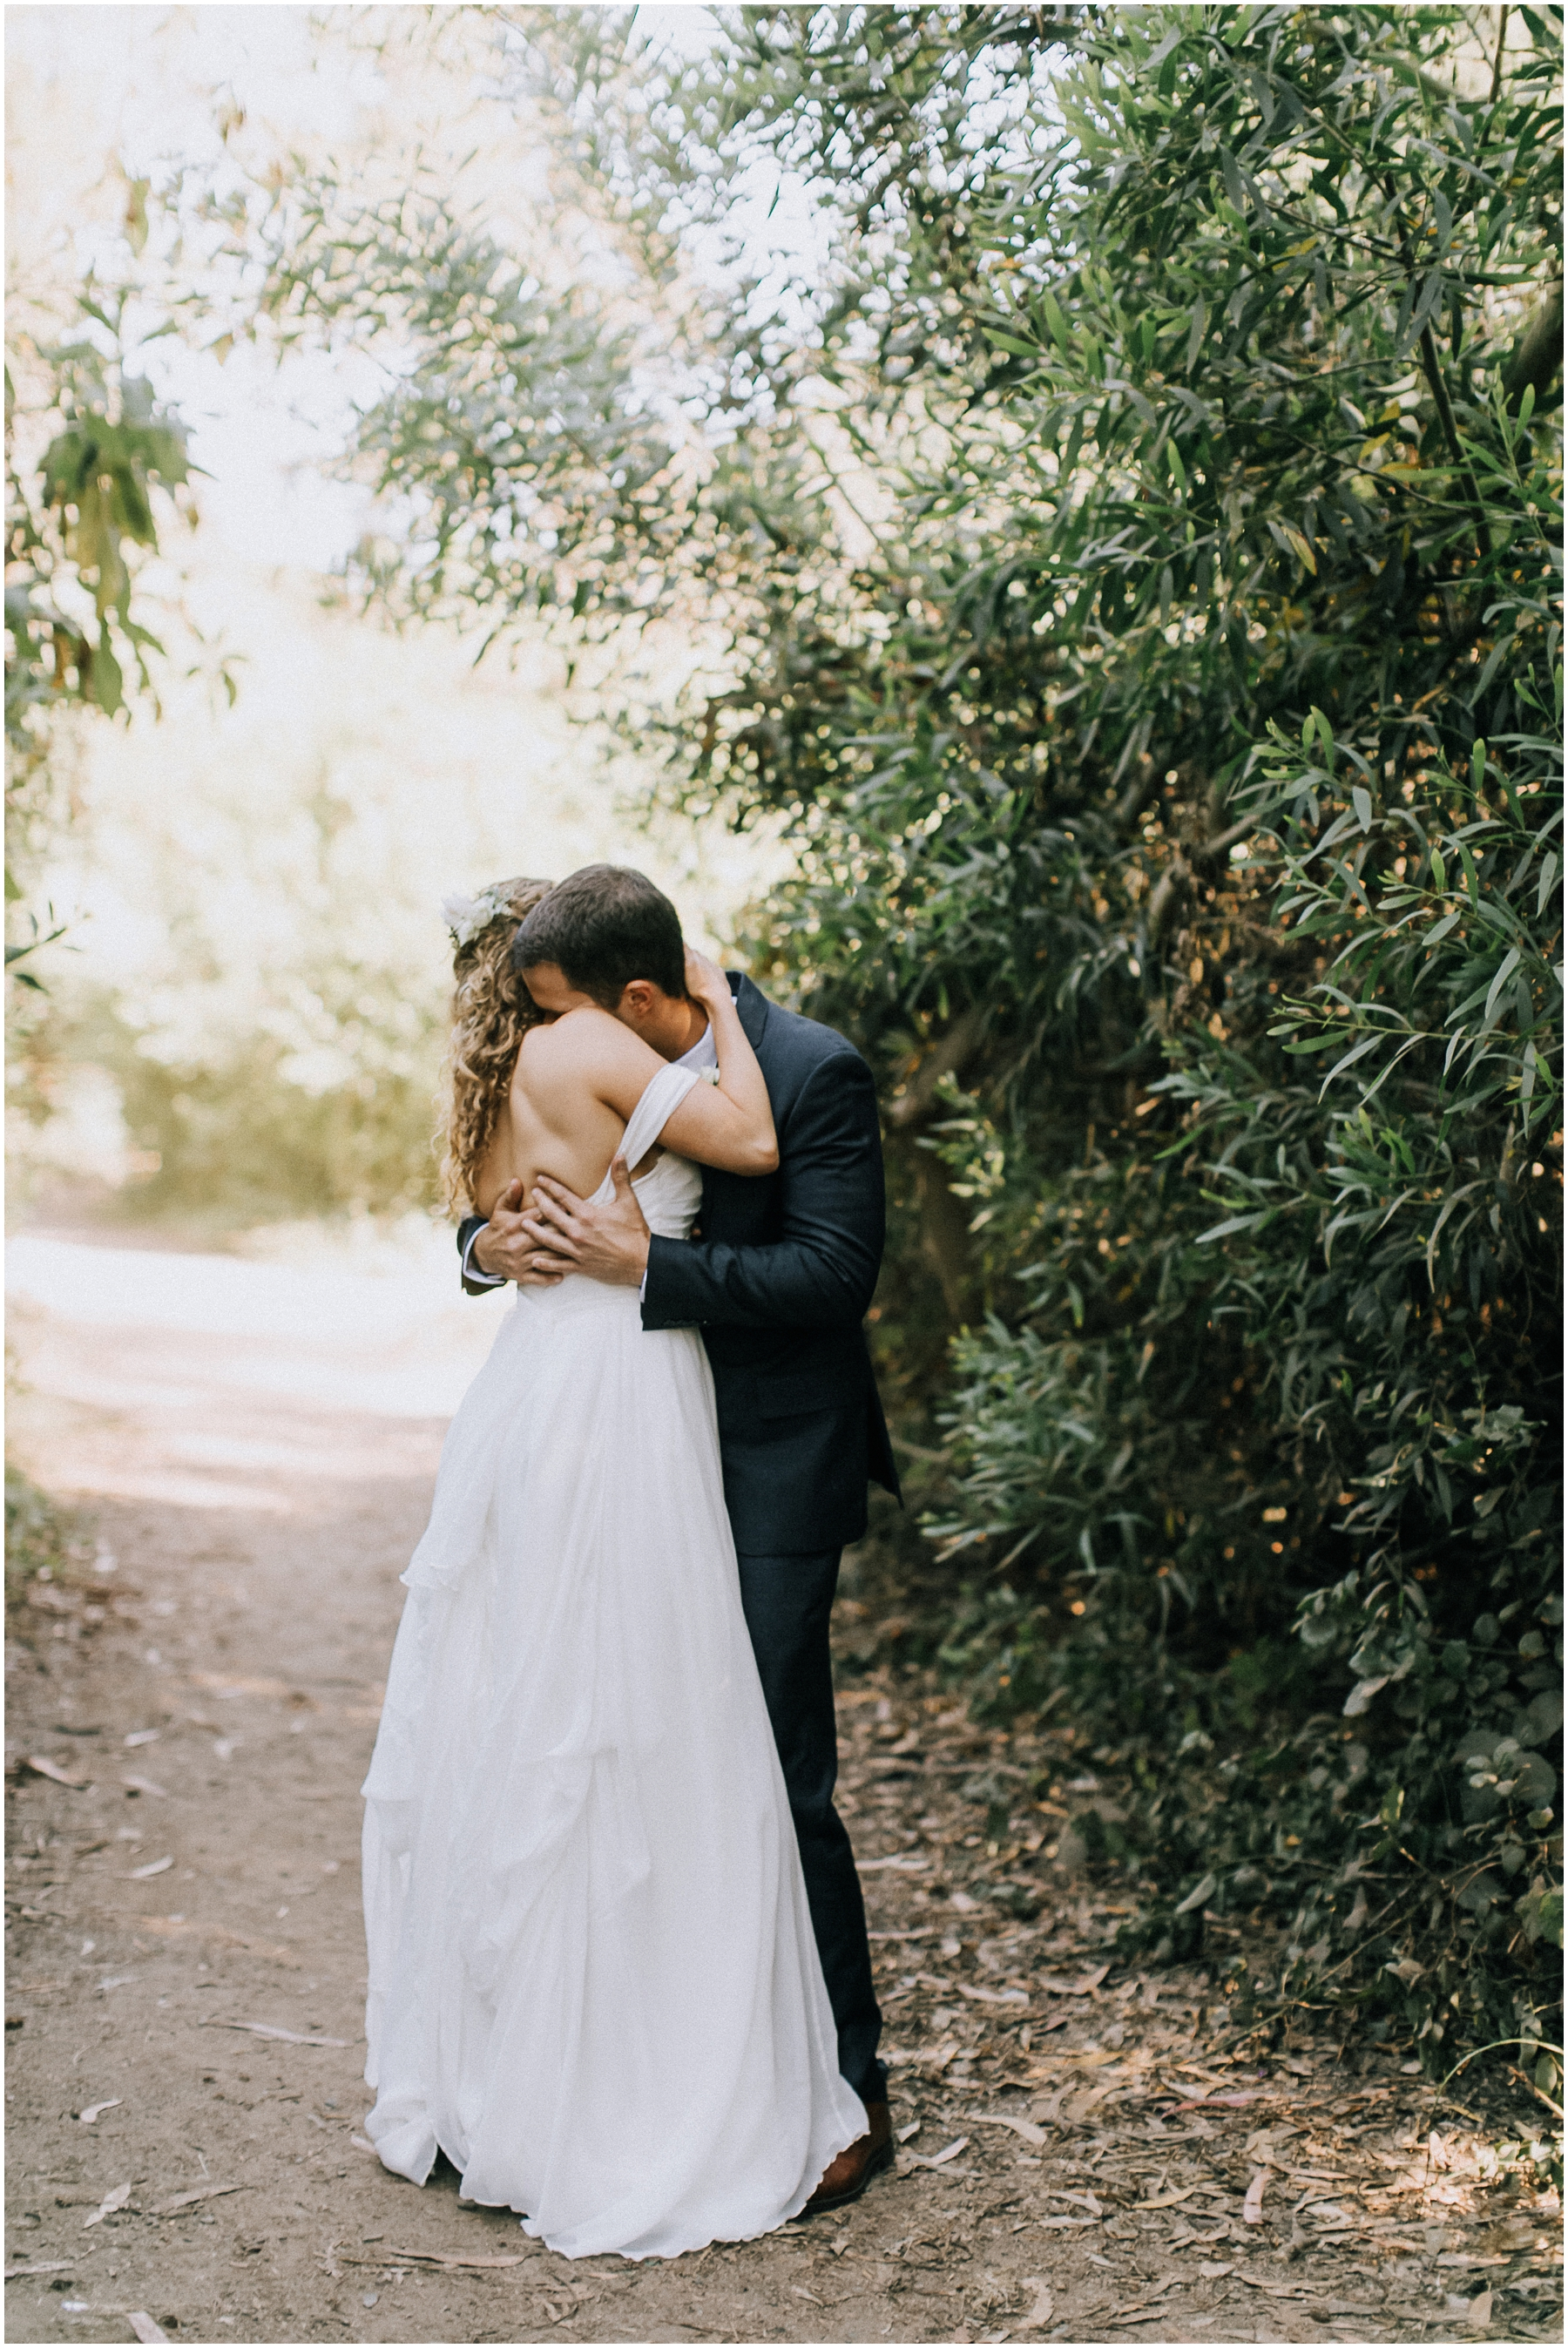 Emily+Paul-WEDDING_KellyBoitanoPhotography_0030